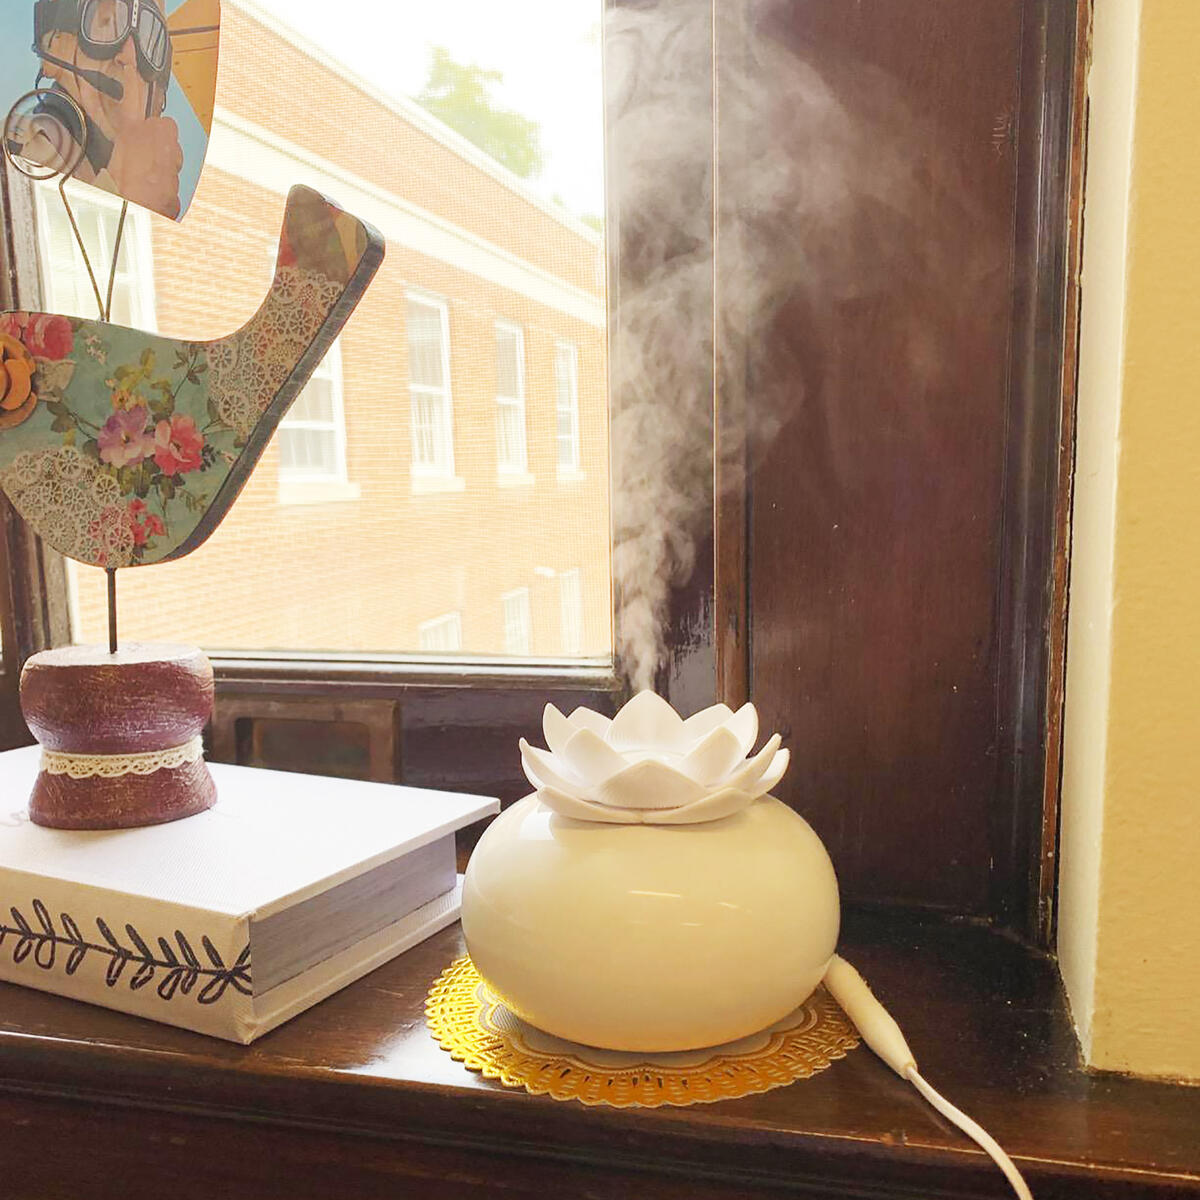 Ceramic Essential Oil Diffuser,Personal Humidifiers Small for Office Desk